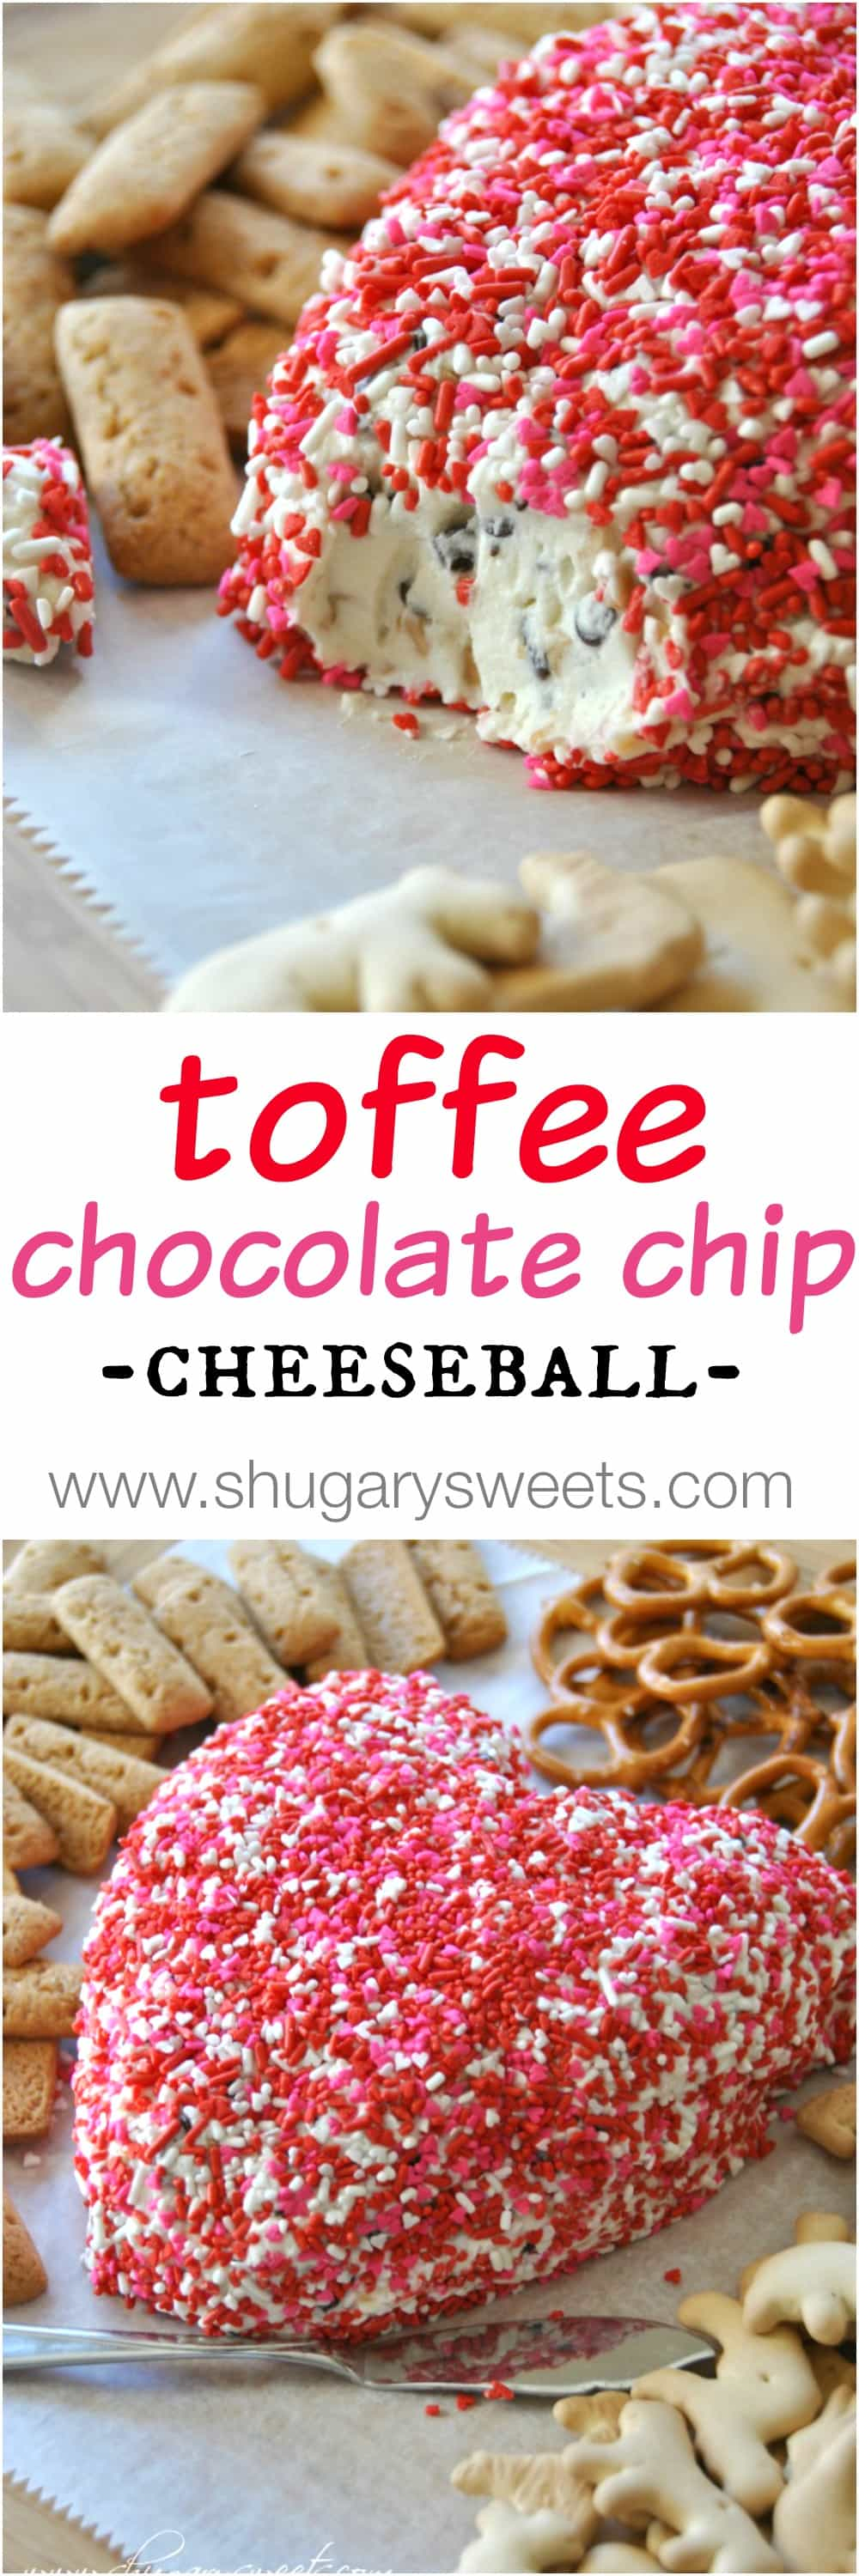 Toffee Chocolate Chip Cheeseball - Shugary Sweets